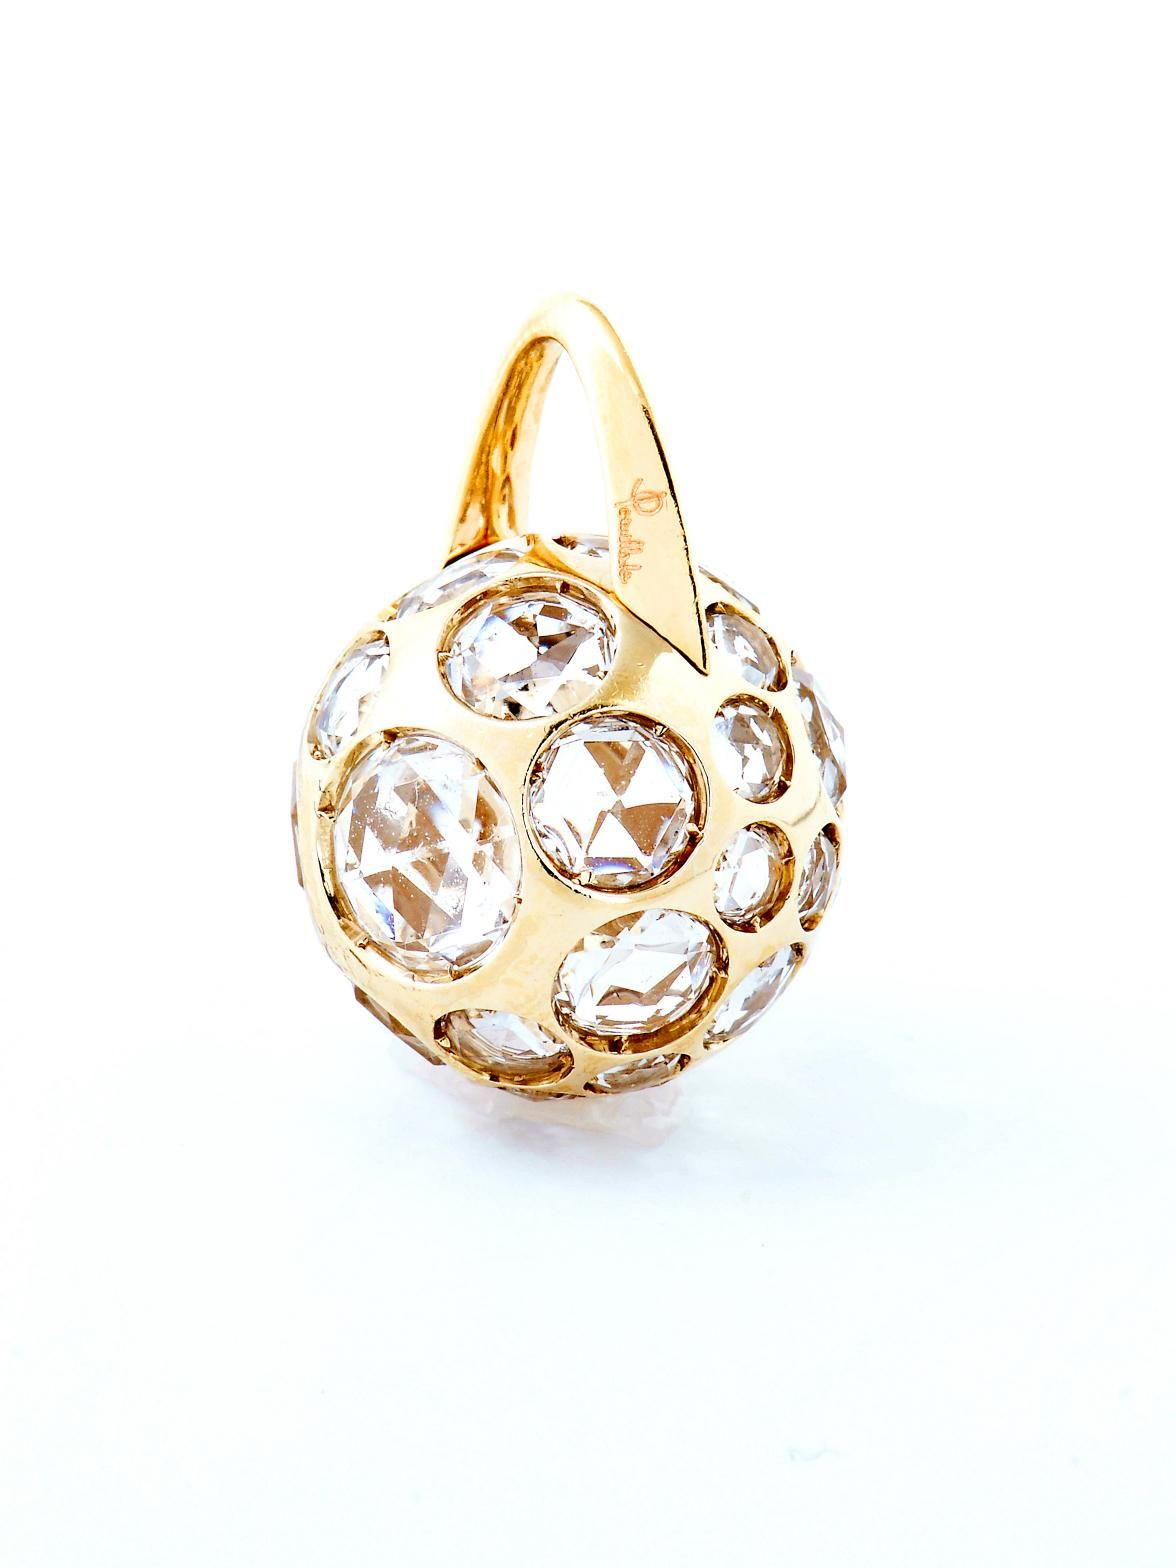 Pomellato 18k Yellow Gold Harem Ball Rock Crystal Pendant. 18k Yellow Gold Ball with Rock Crystals. Available at London Jewelers.